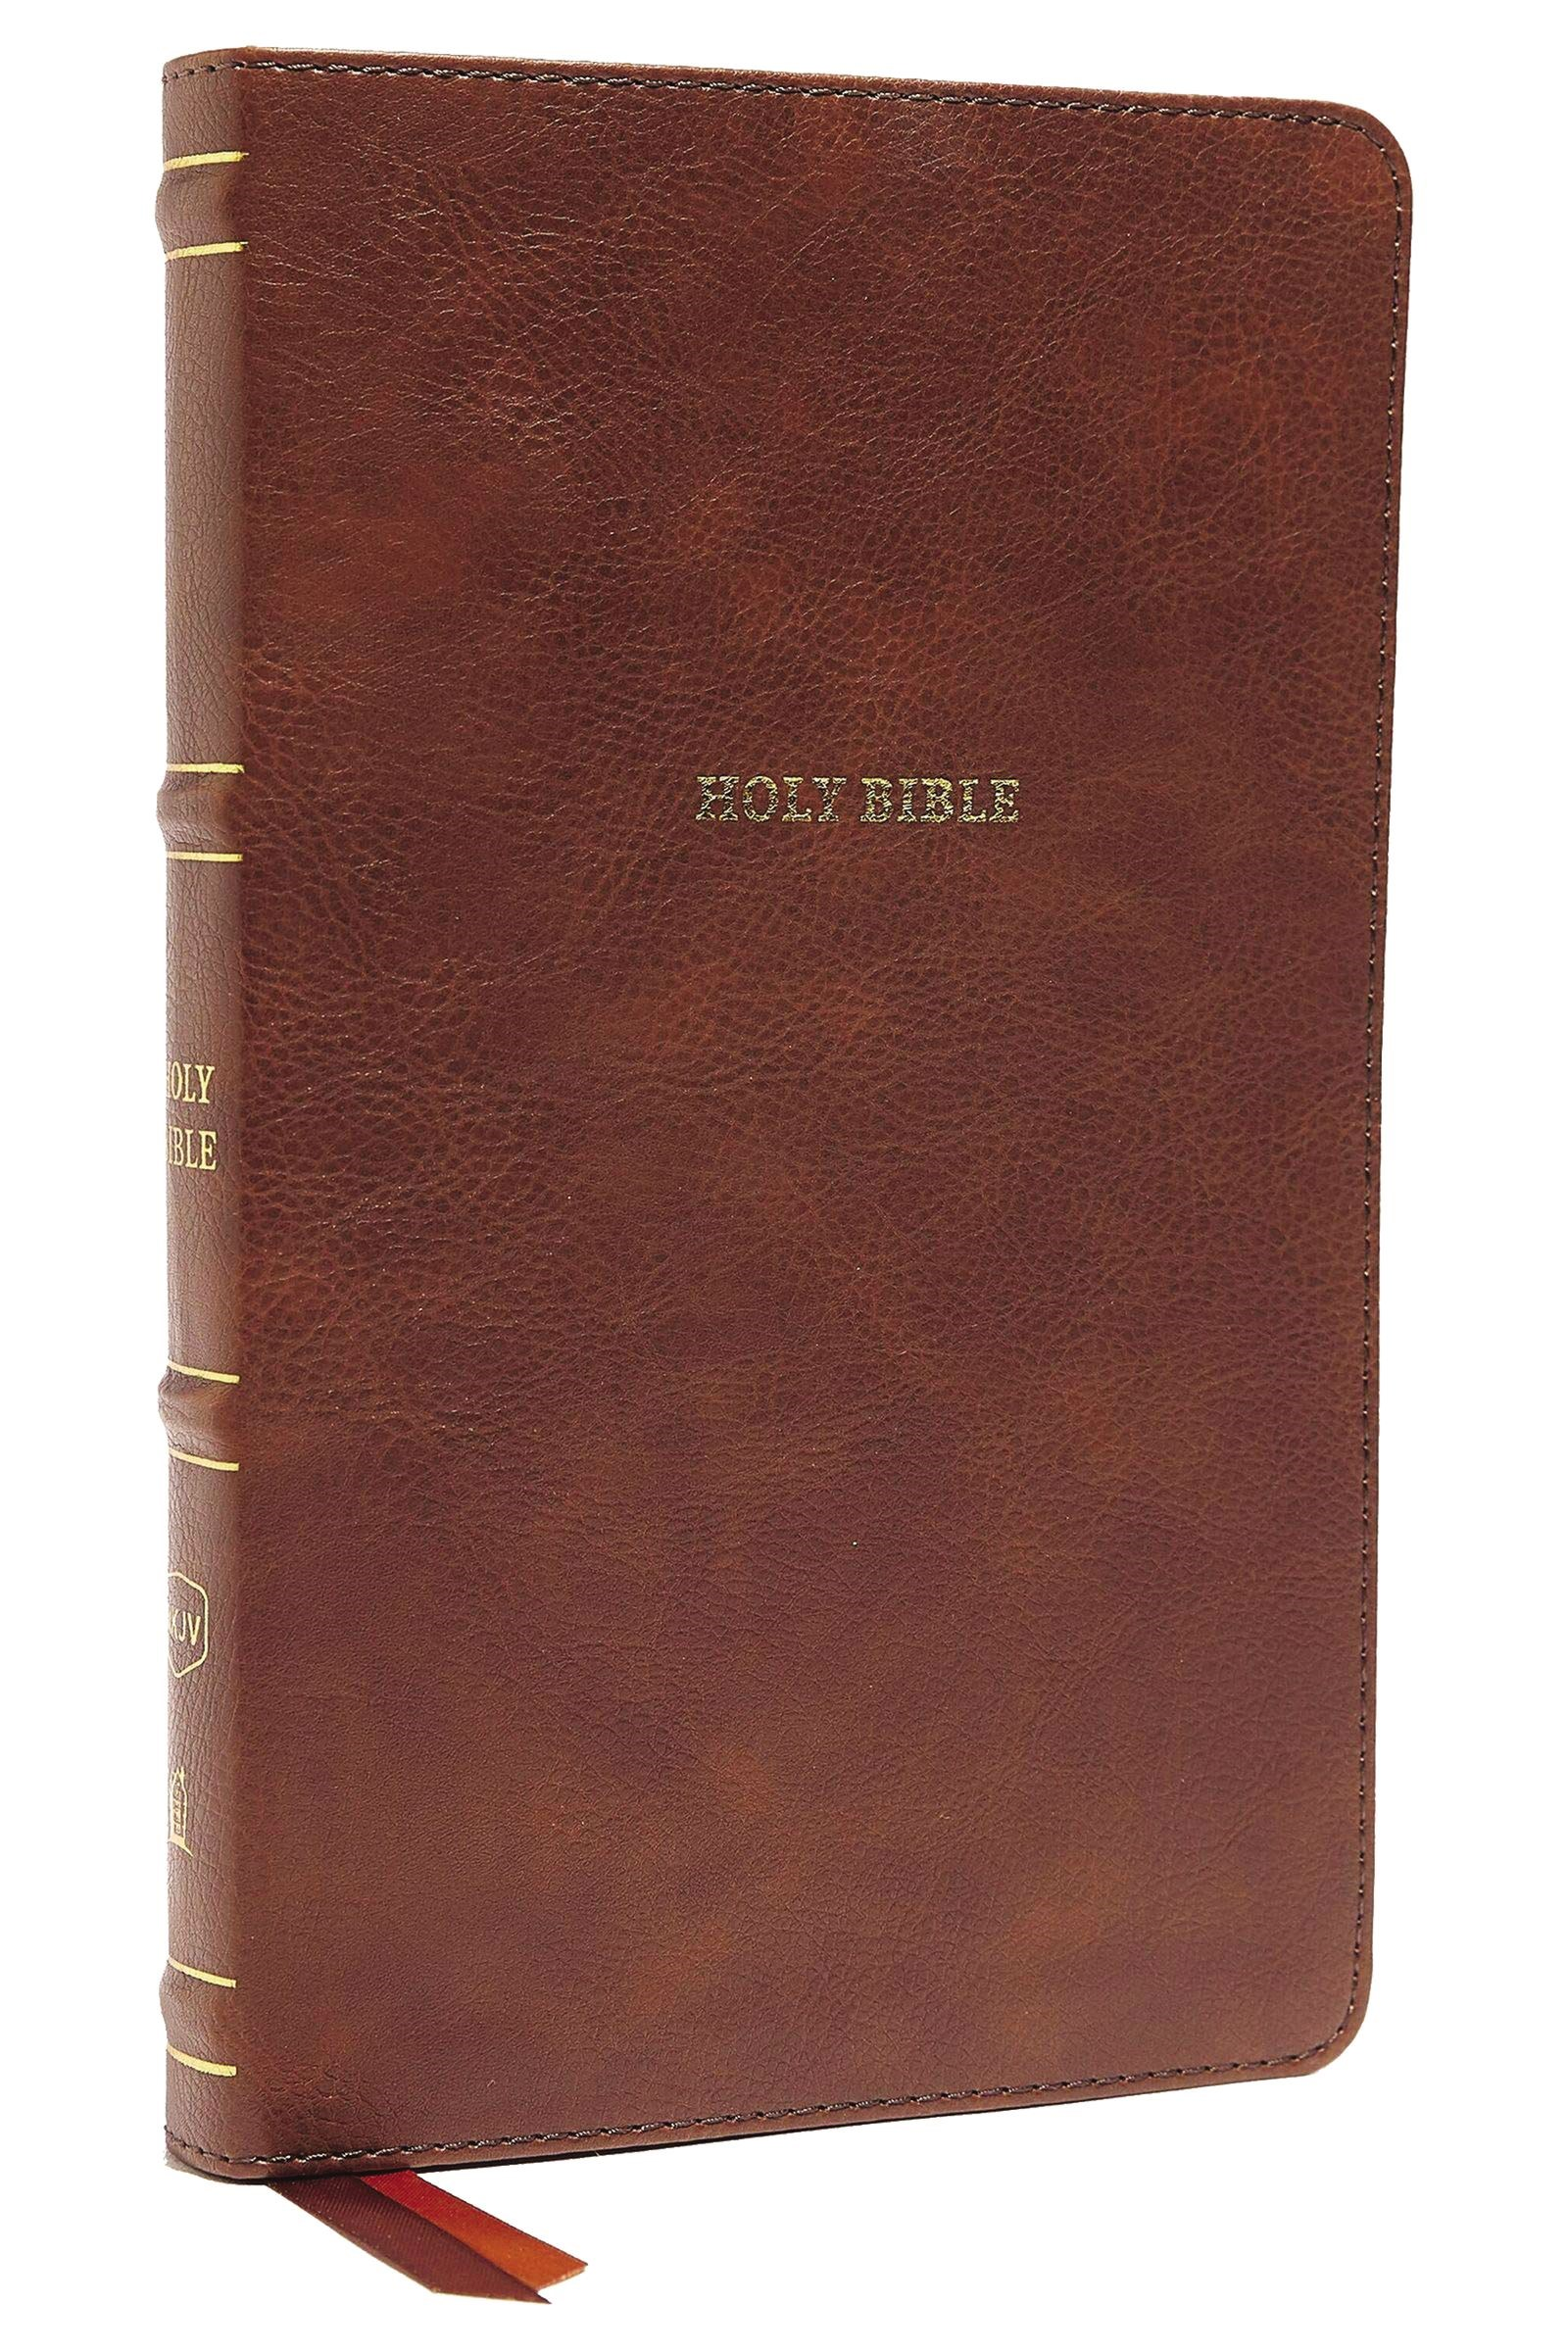 NKJV Thinline Bible (Comfort Print)-Brown LeatherSoft Indexed